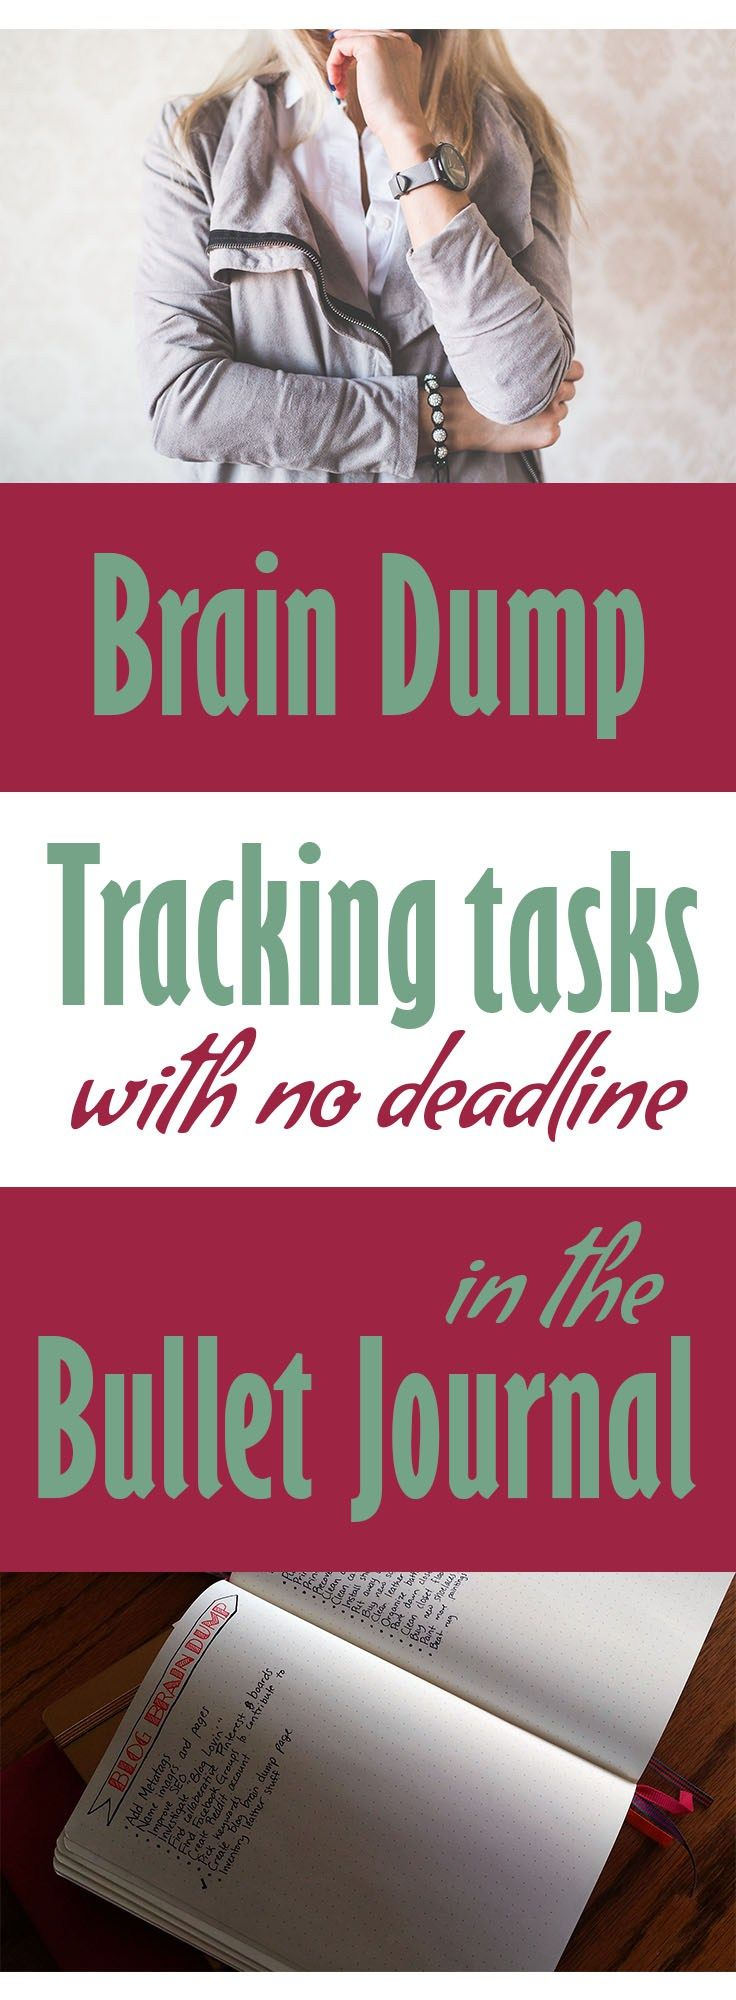 There are so many little things that need to get done, but don't belong on a monthly, weekly, or daily page. These tasks have a tendency to fall through the cracks and get forgotten. There's an easy way to keep them all in one place, and that is the Brain Dump.